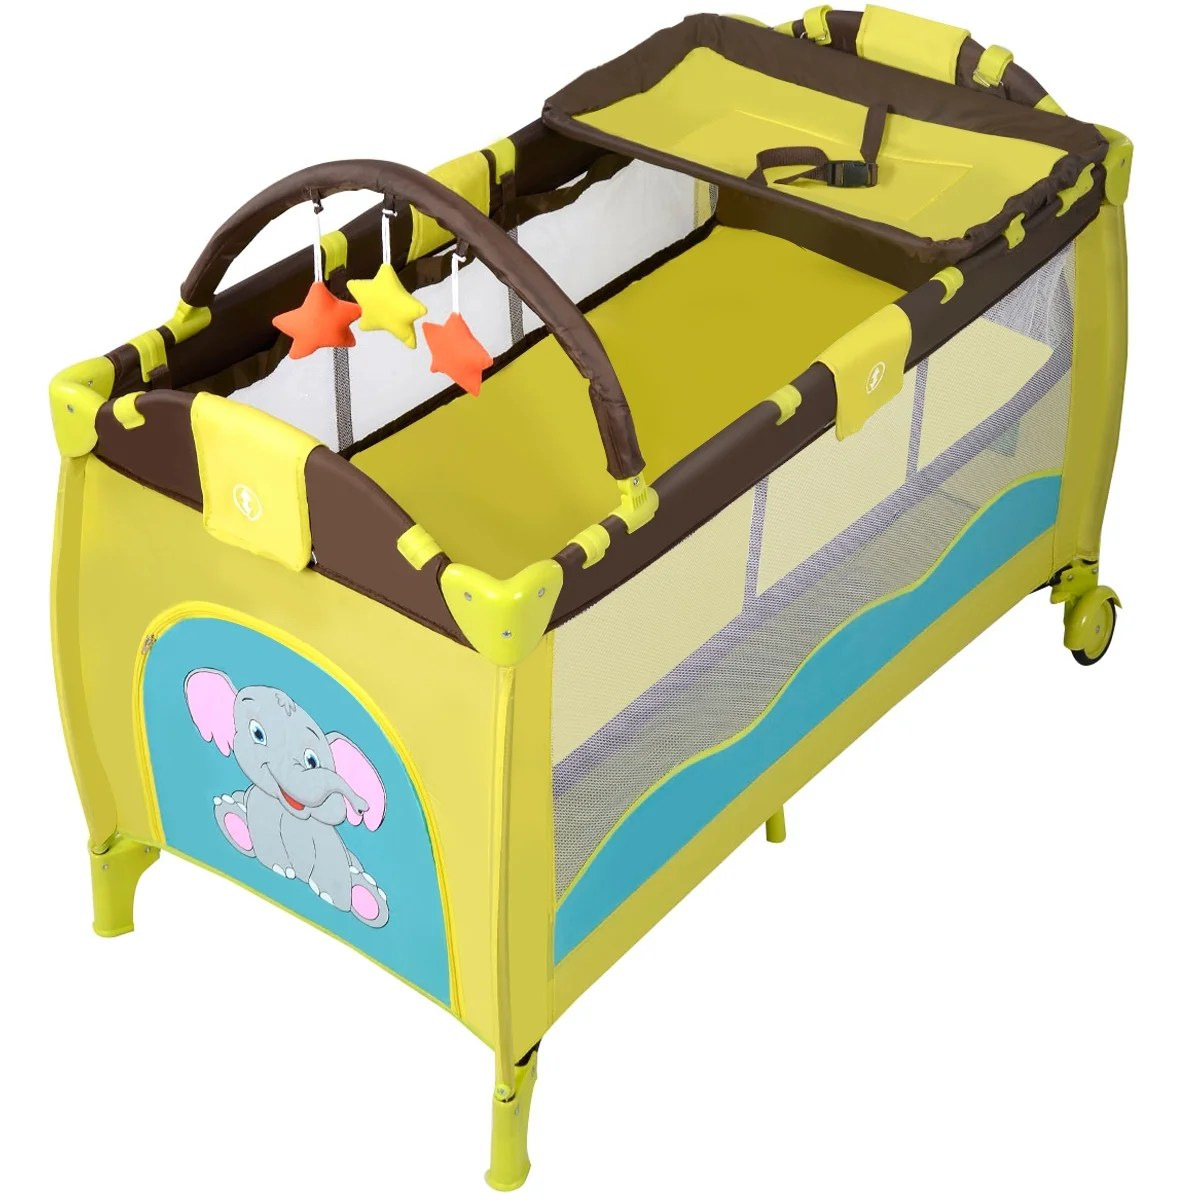 Baby Travel Mattress New Green Baby Crib Playpen Playard Pack Travel Infant Bassinet Bed Foldable